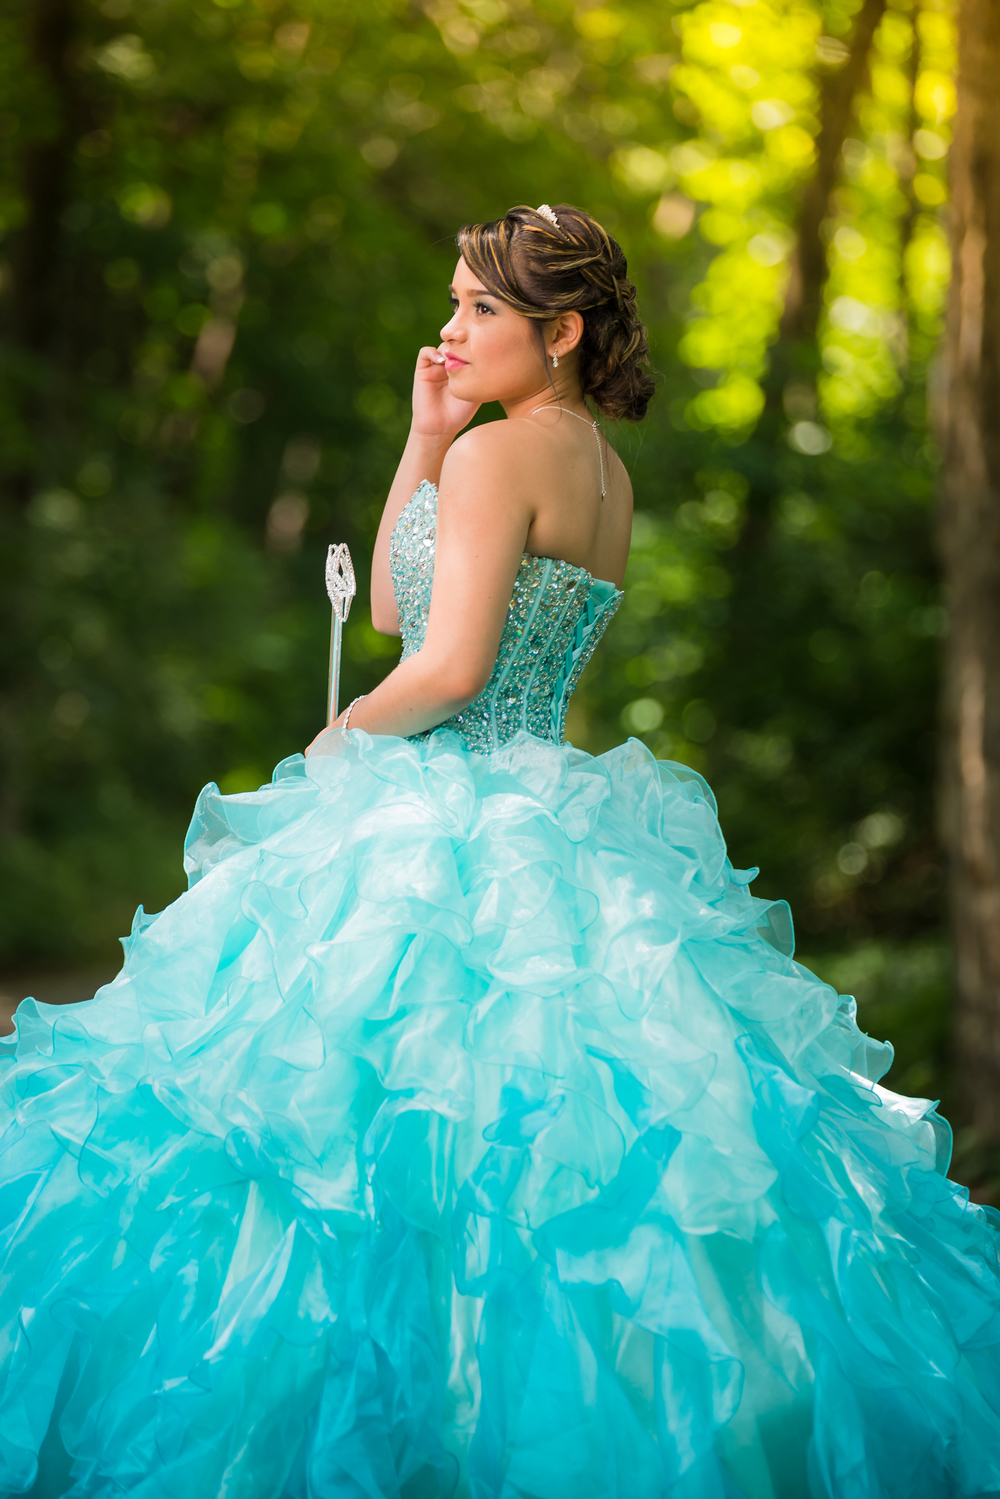 Naomis-Sweet-Fifteen-Garcia-Photography-2161.jpg